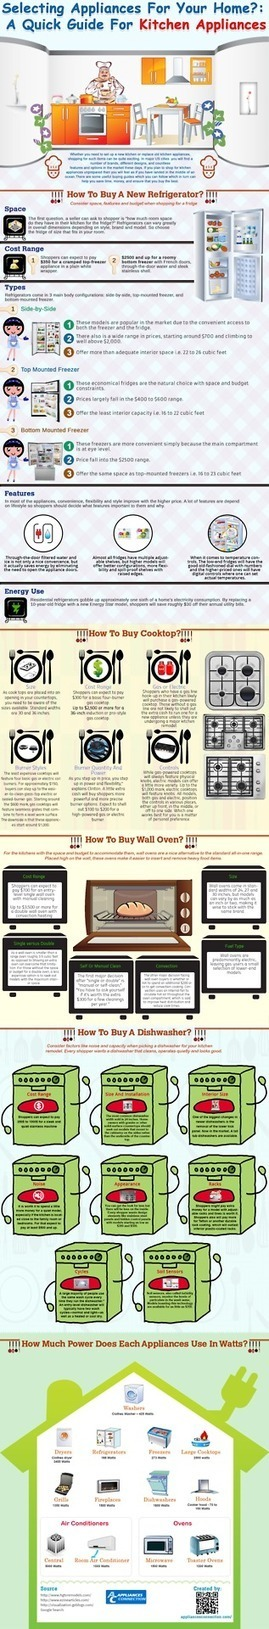 Selecting Appliances for your Home? : A Quick Guide For Kitchen Appliances | Appliance Best Sellers | Scoop.it